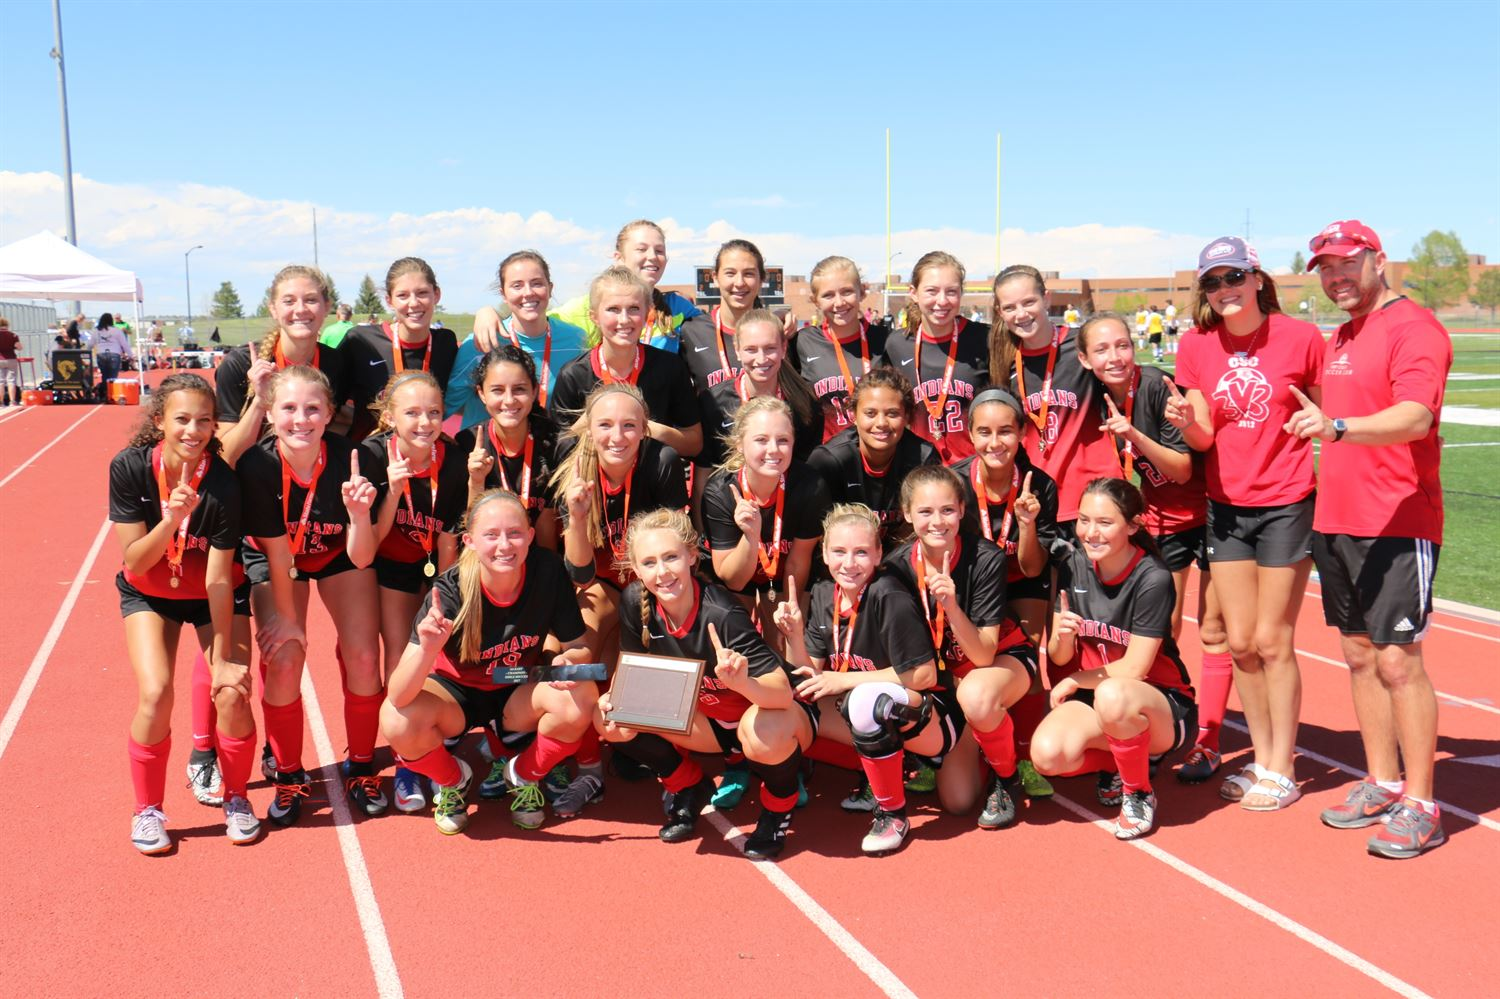 Cheyenne Central High School - Lady Indians